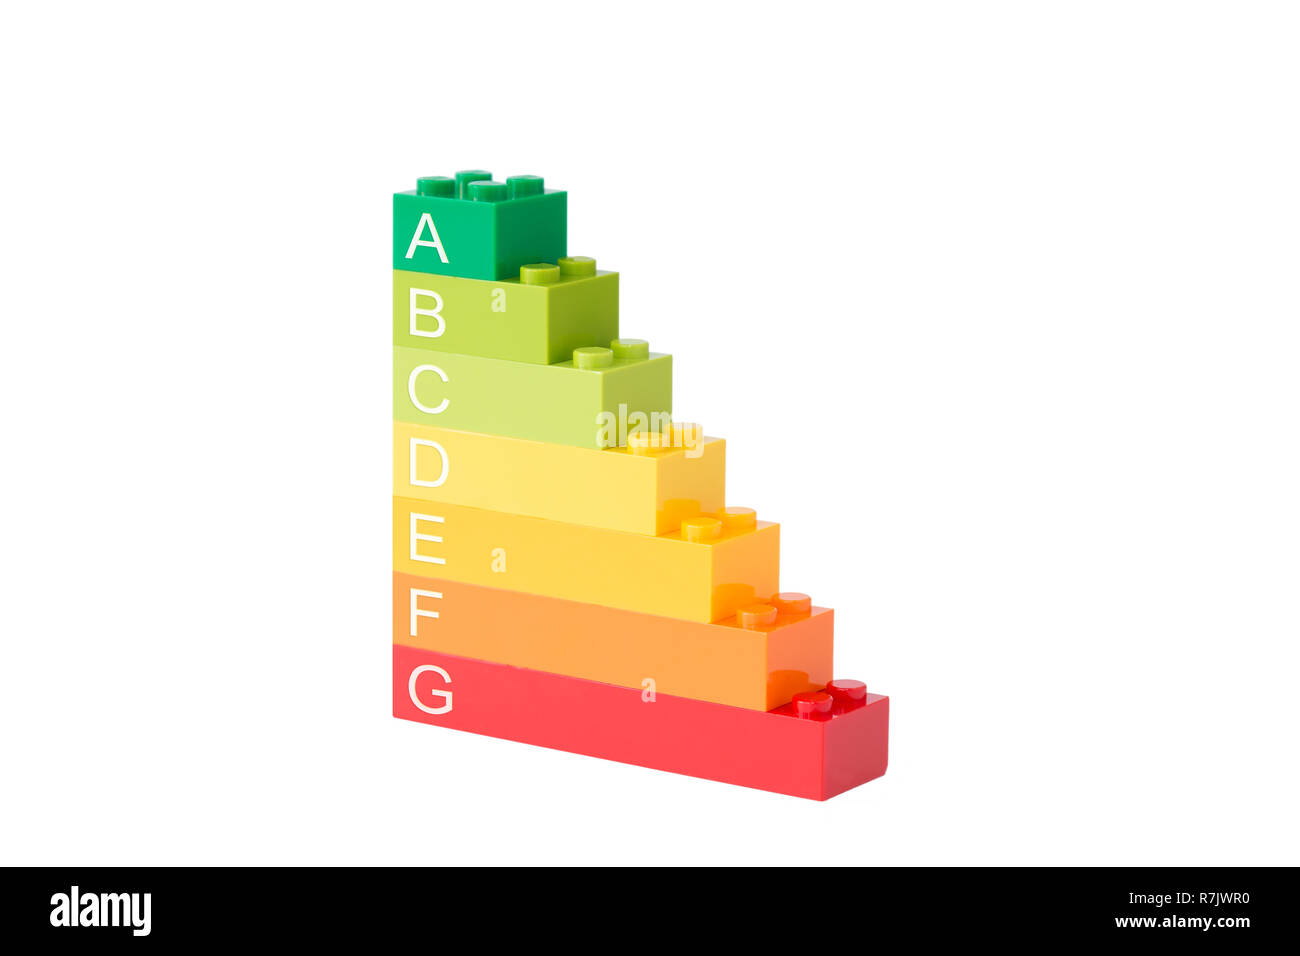 European Union energy efficiency label with classes from A to G, made of toy building bricks, side view. Isolated on white background. - Stock Image